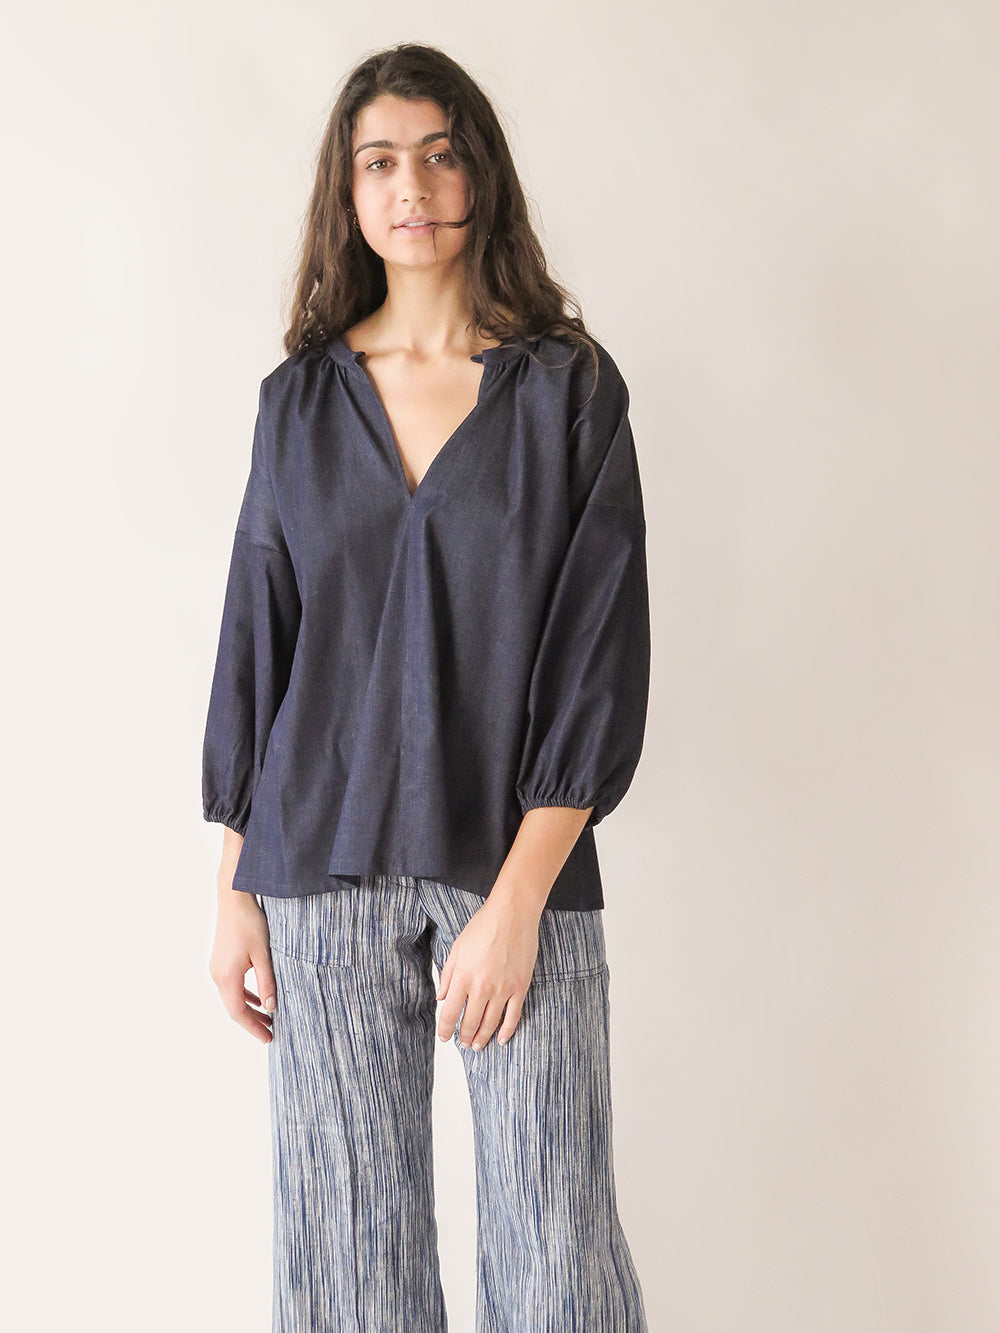 signature patricia blouse in denim